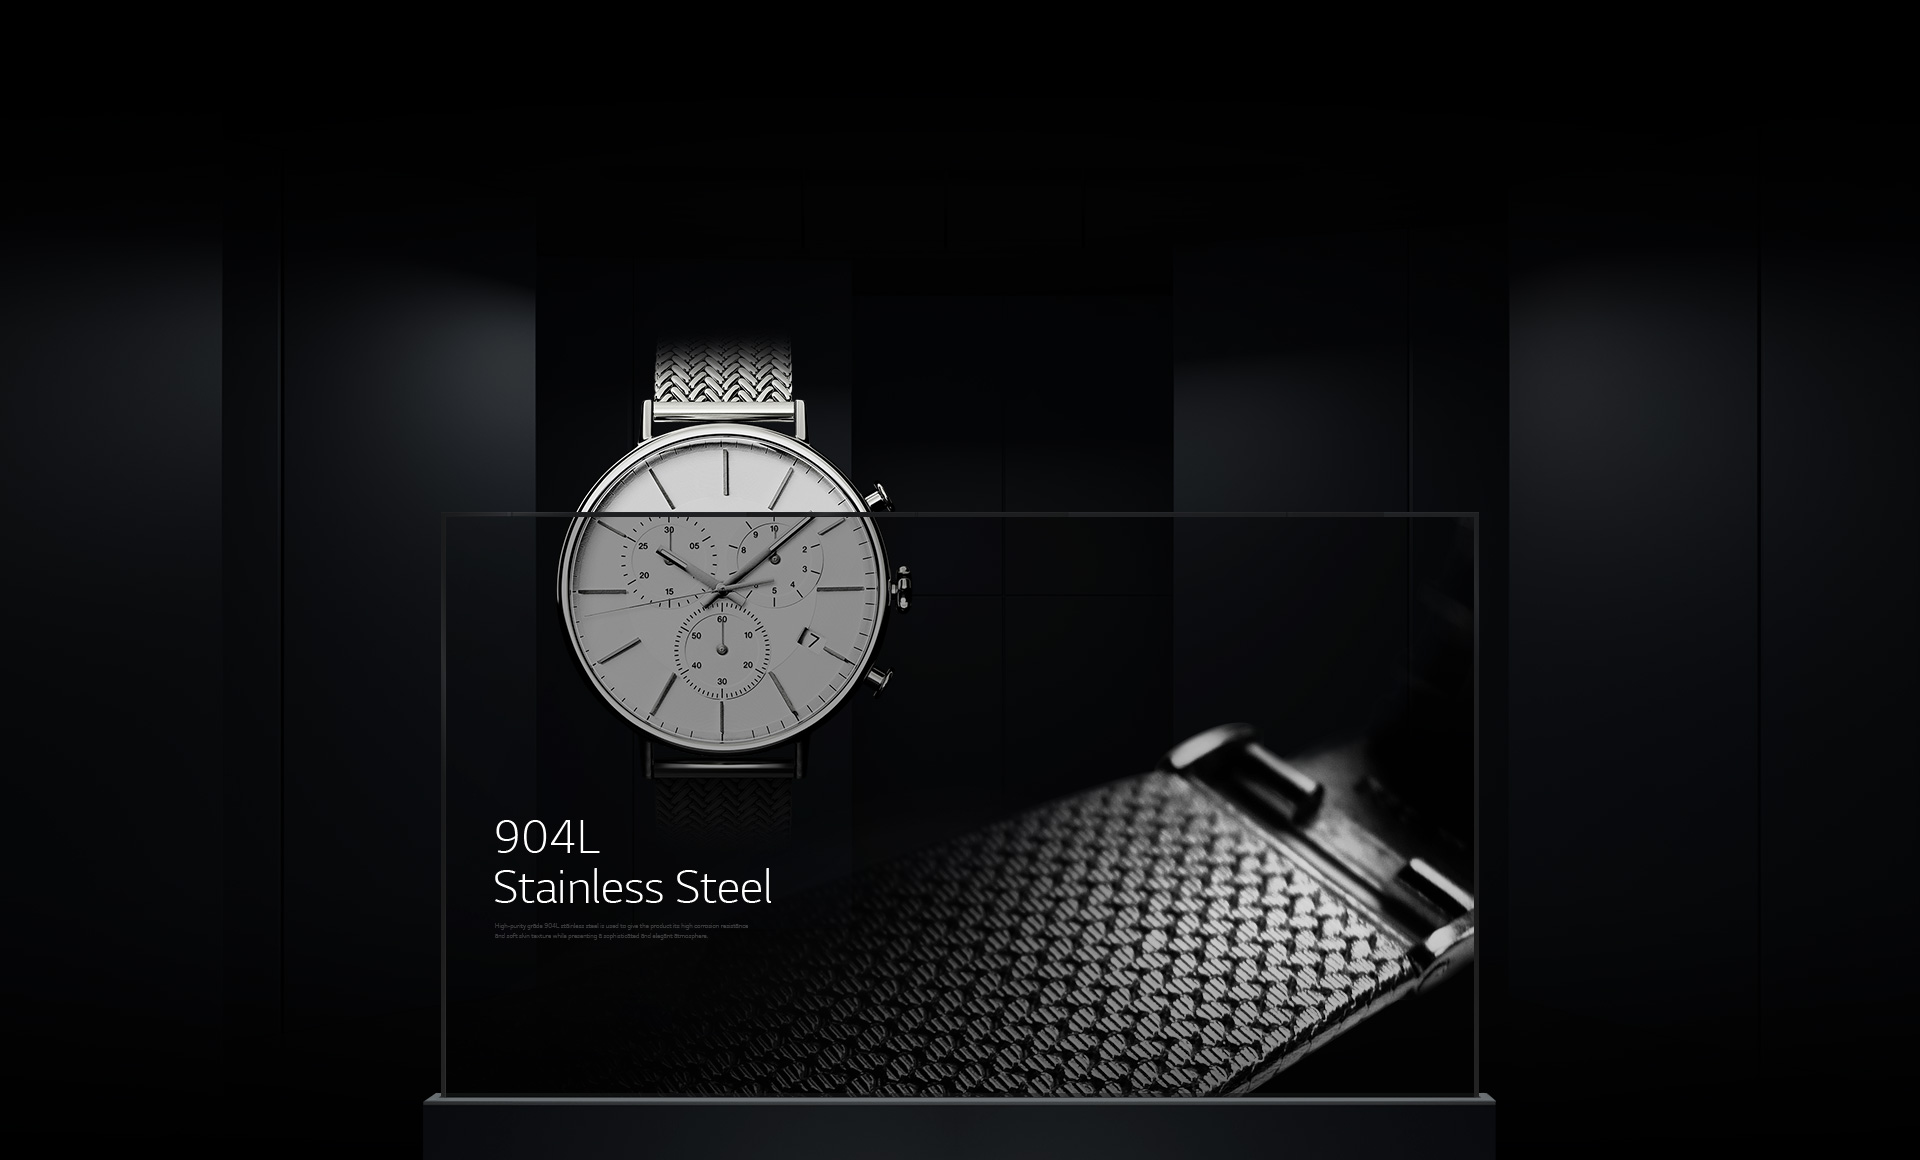 A close up shot of stainless steel bracelet material detail displayed on a single Transparent OLED signage overlaid with a luxurious watch image in the background.